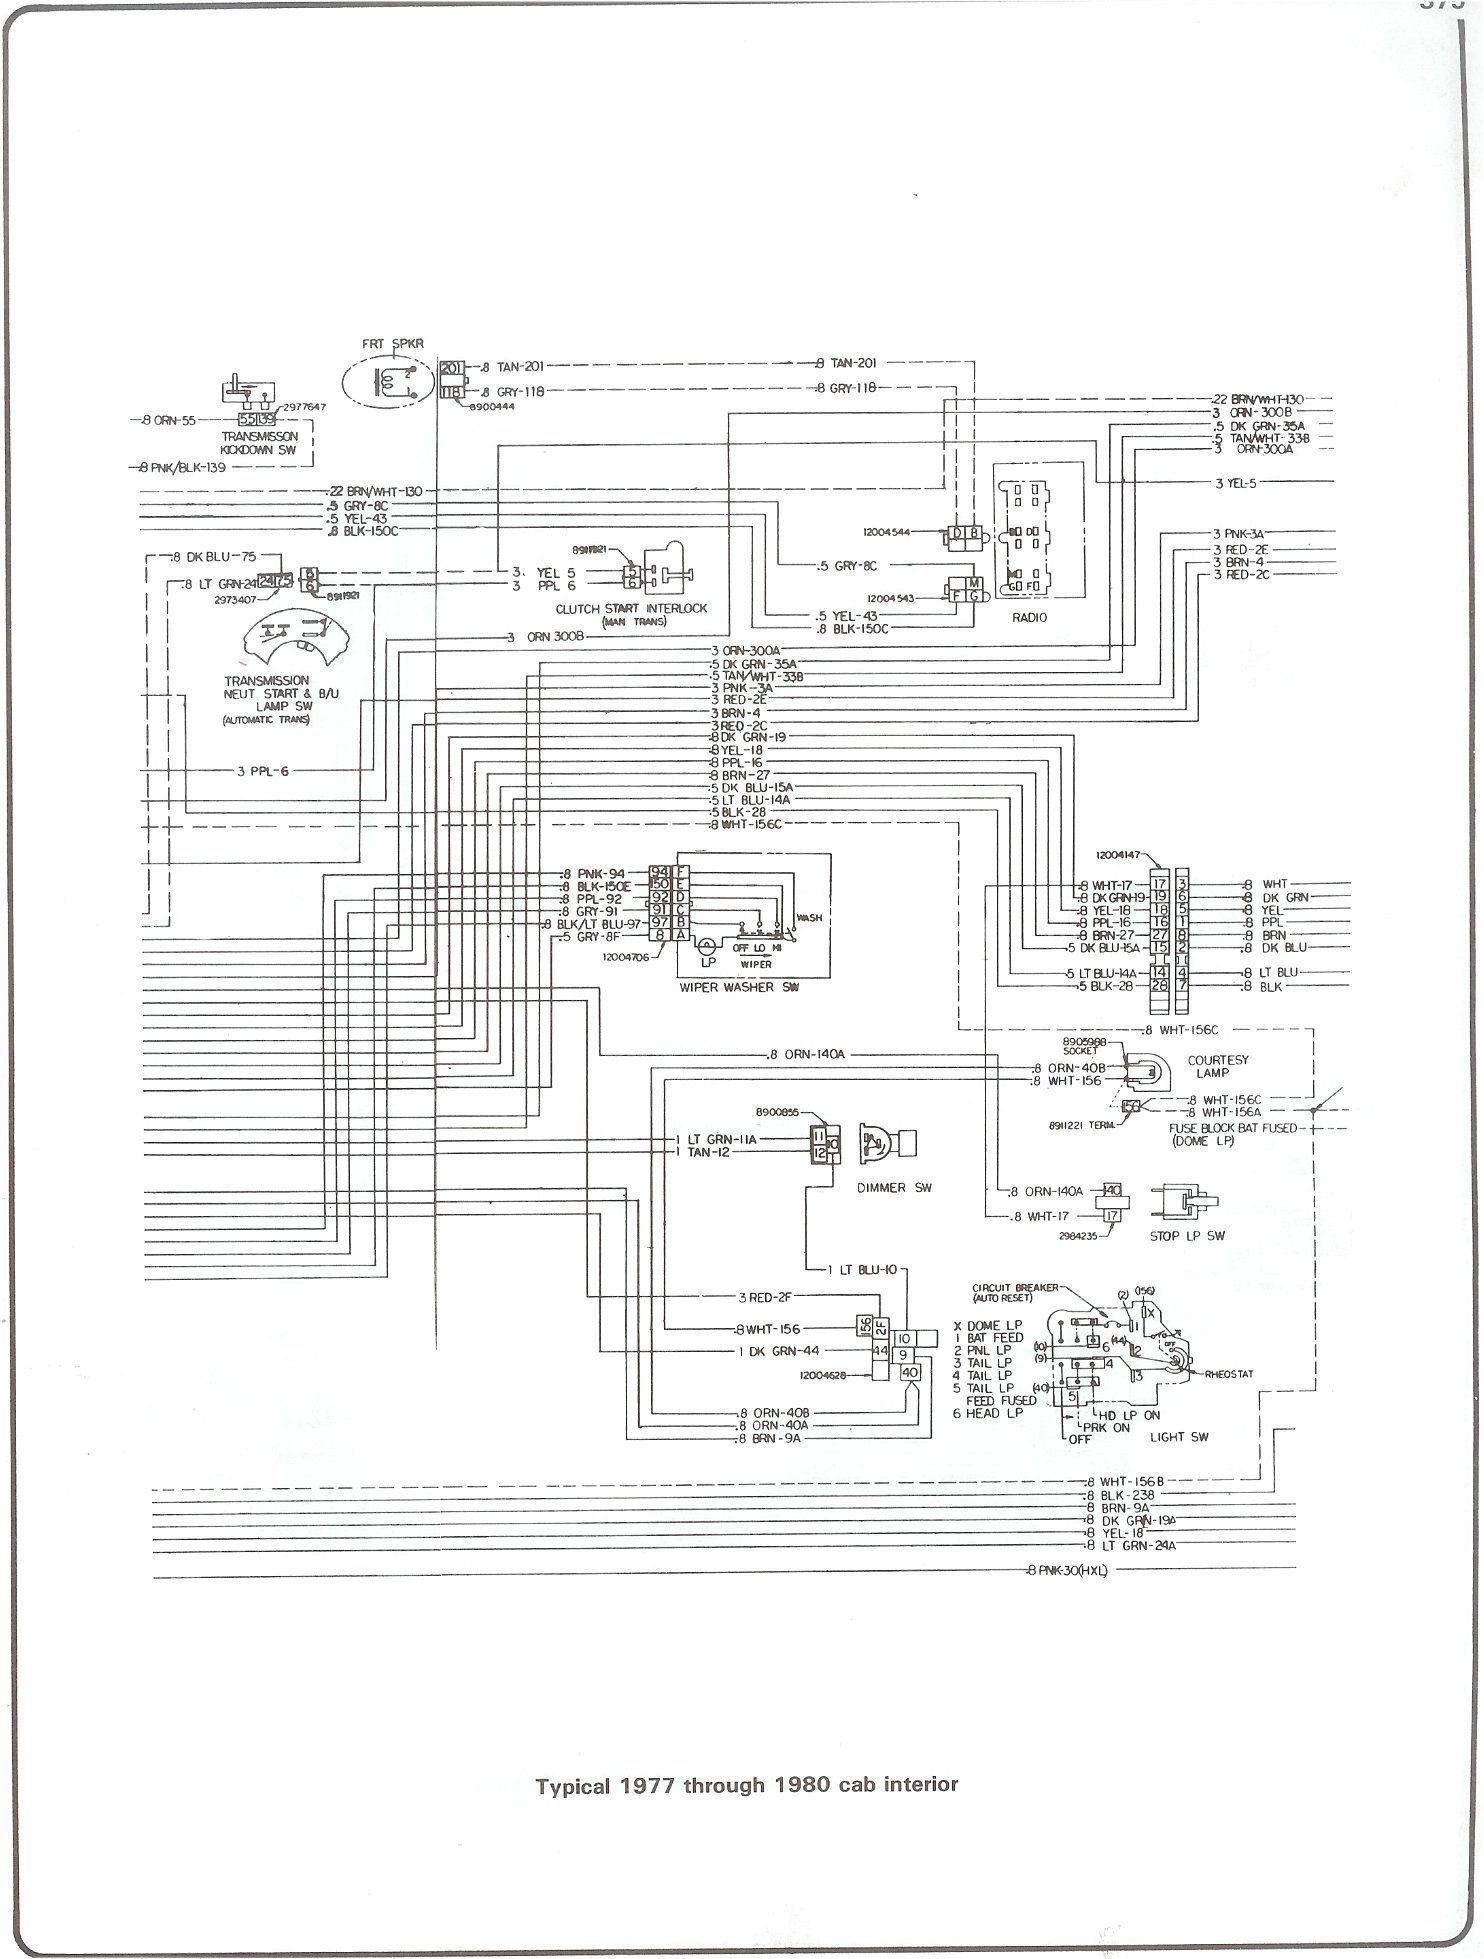 81 chevy c10 wiring diagram 81 wiring diagrams description 77 80 cab inter chevy c wiring diagram